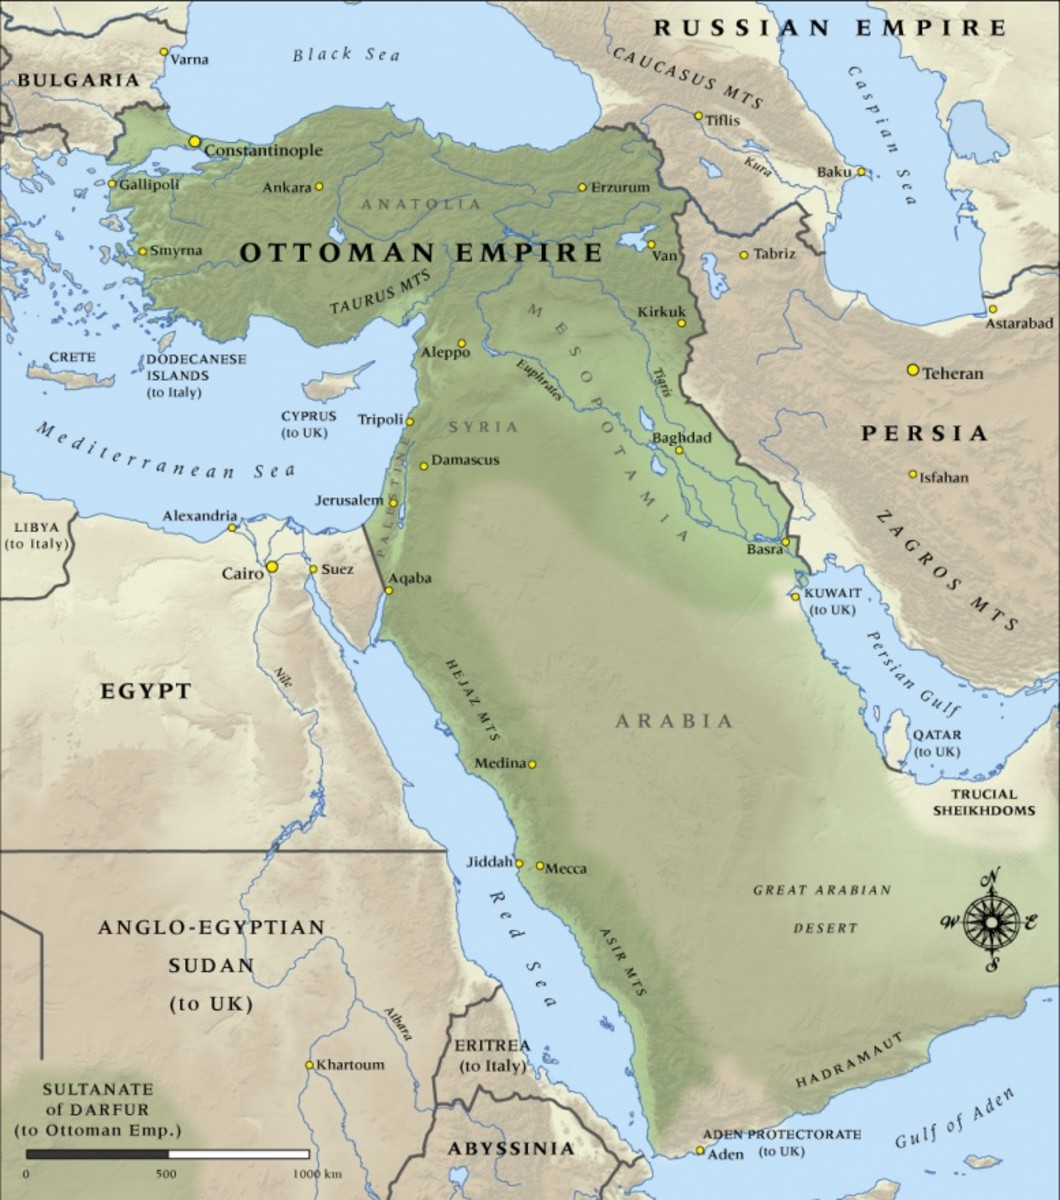 The Ottoman Empire of 1914 was something of a far cry of its previous size but still commanded a respectably large amount of territory.